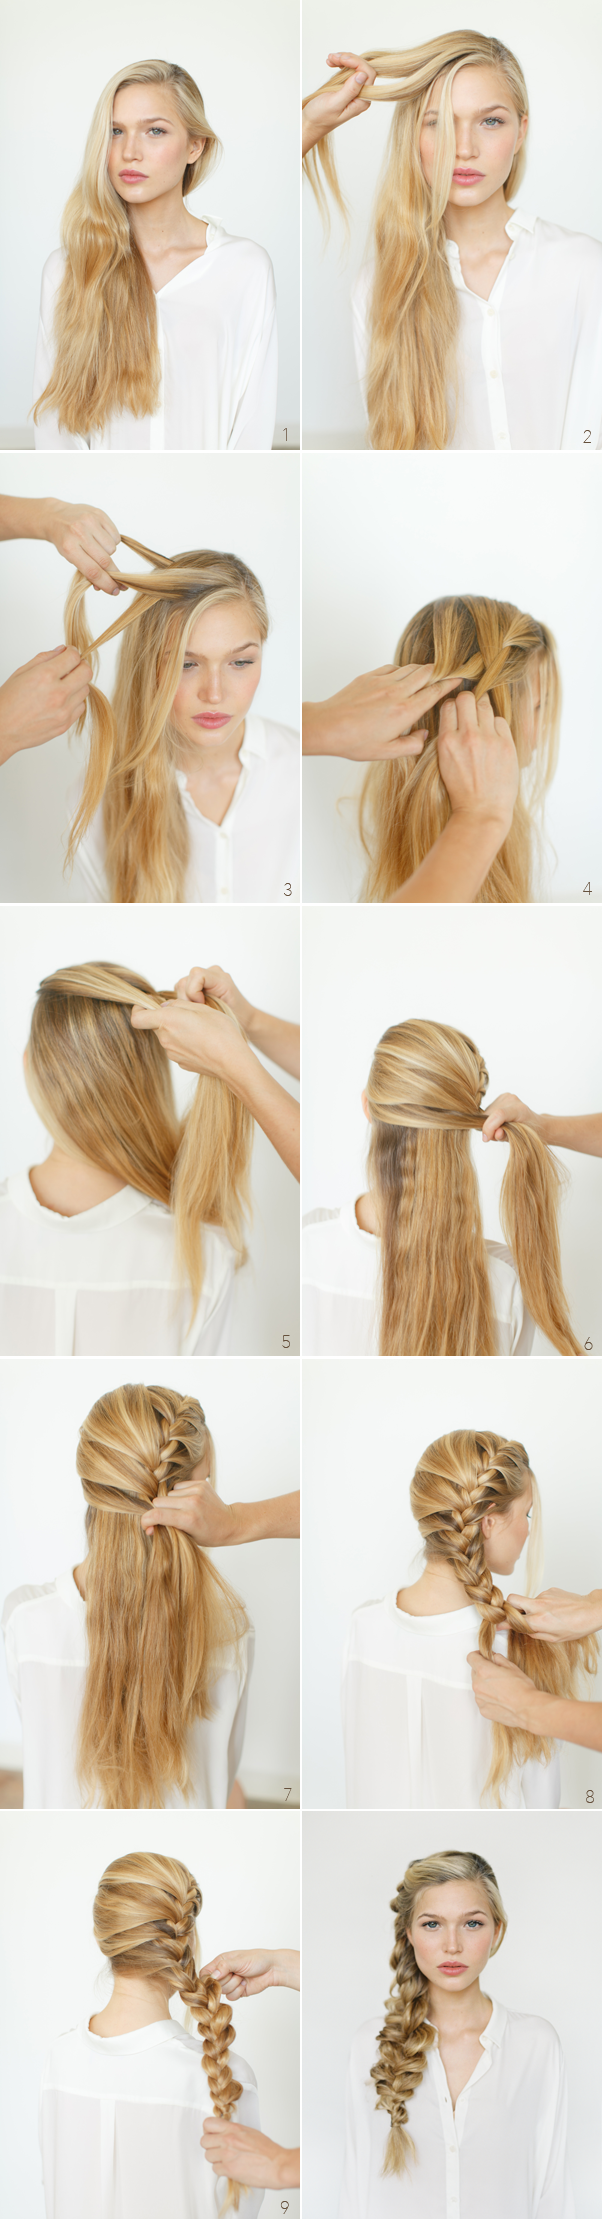 Remarkable 12 Romantic Braided Hairstyles With Useful Tutorials Pretty Designs Hairstyles For Women Draintrainus